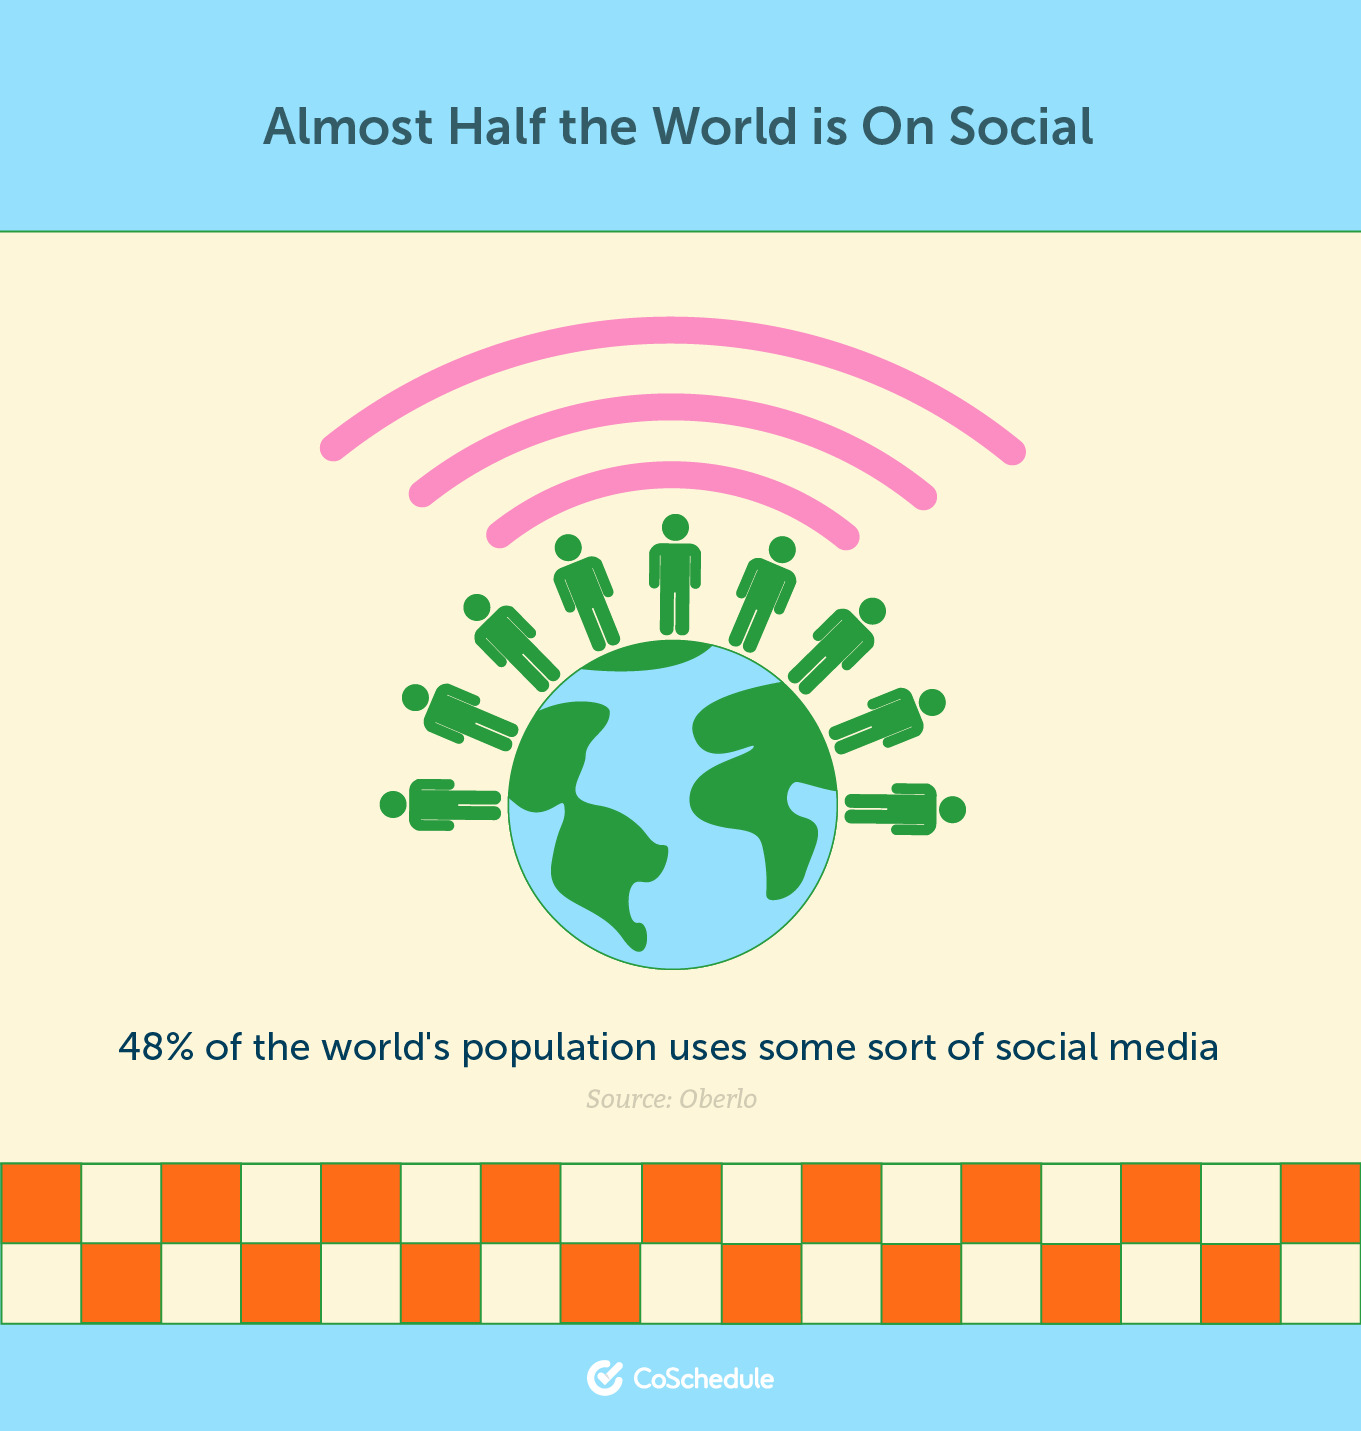 Almost half the world is on social